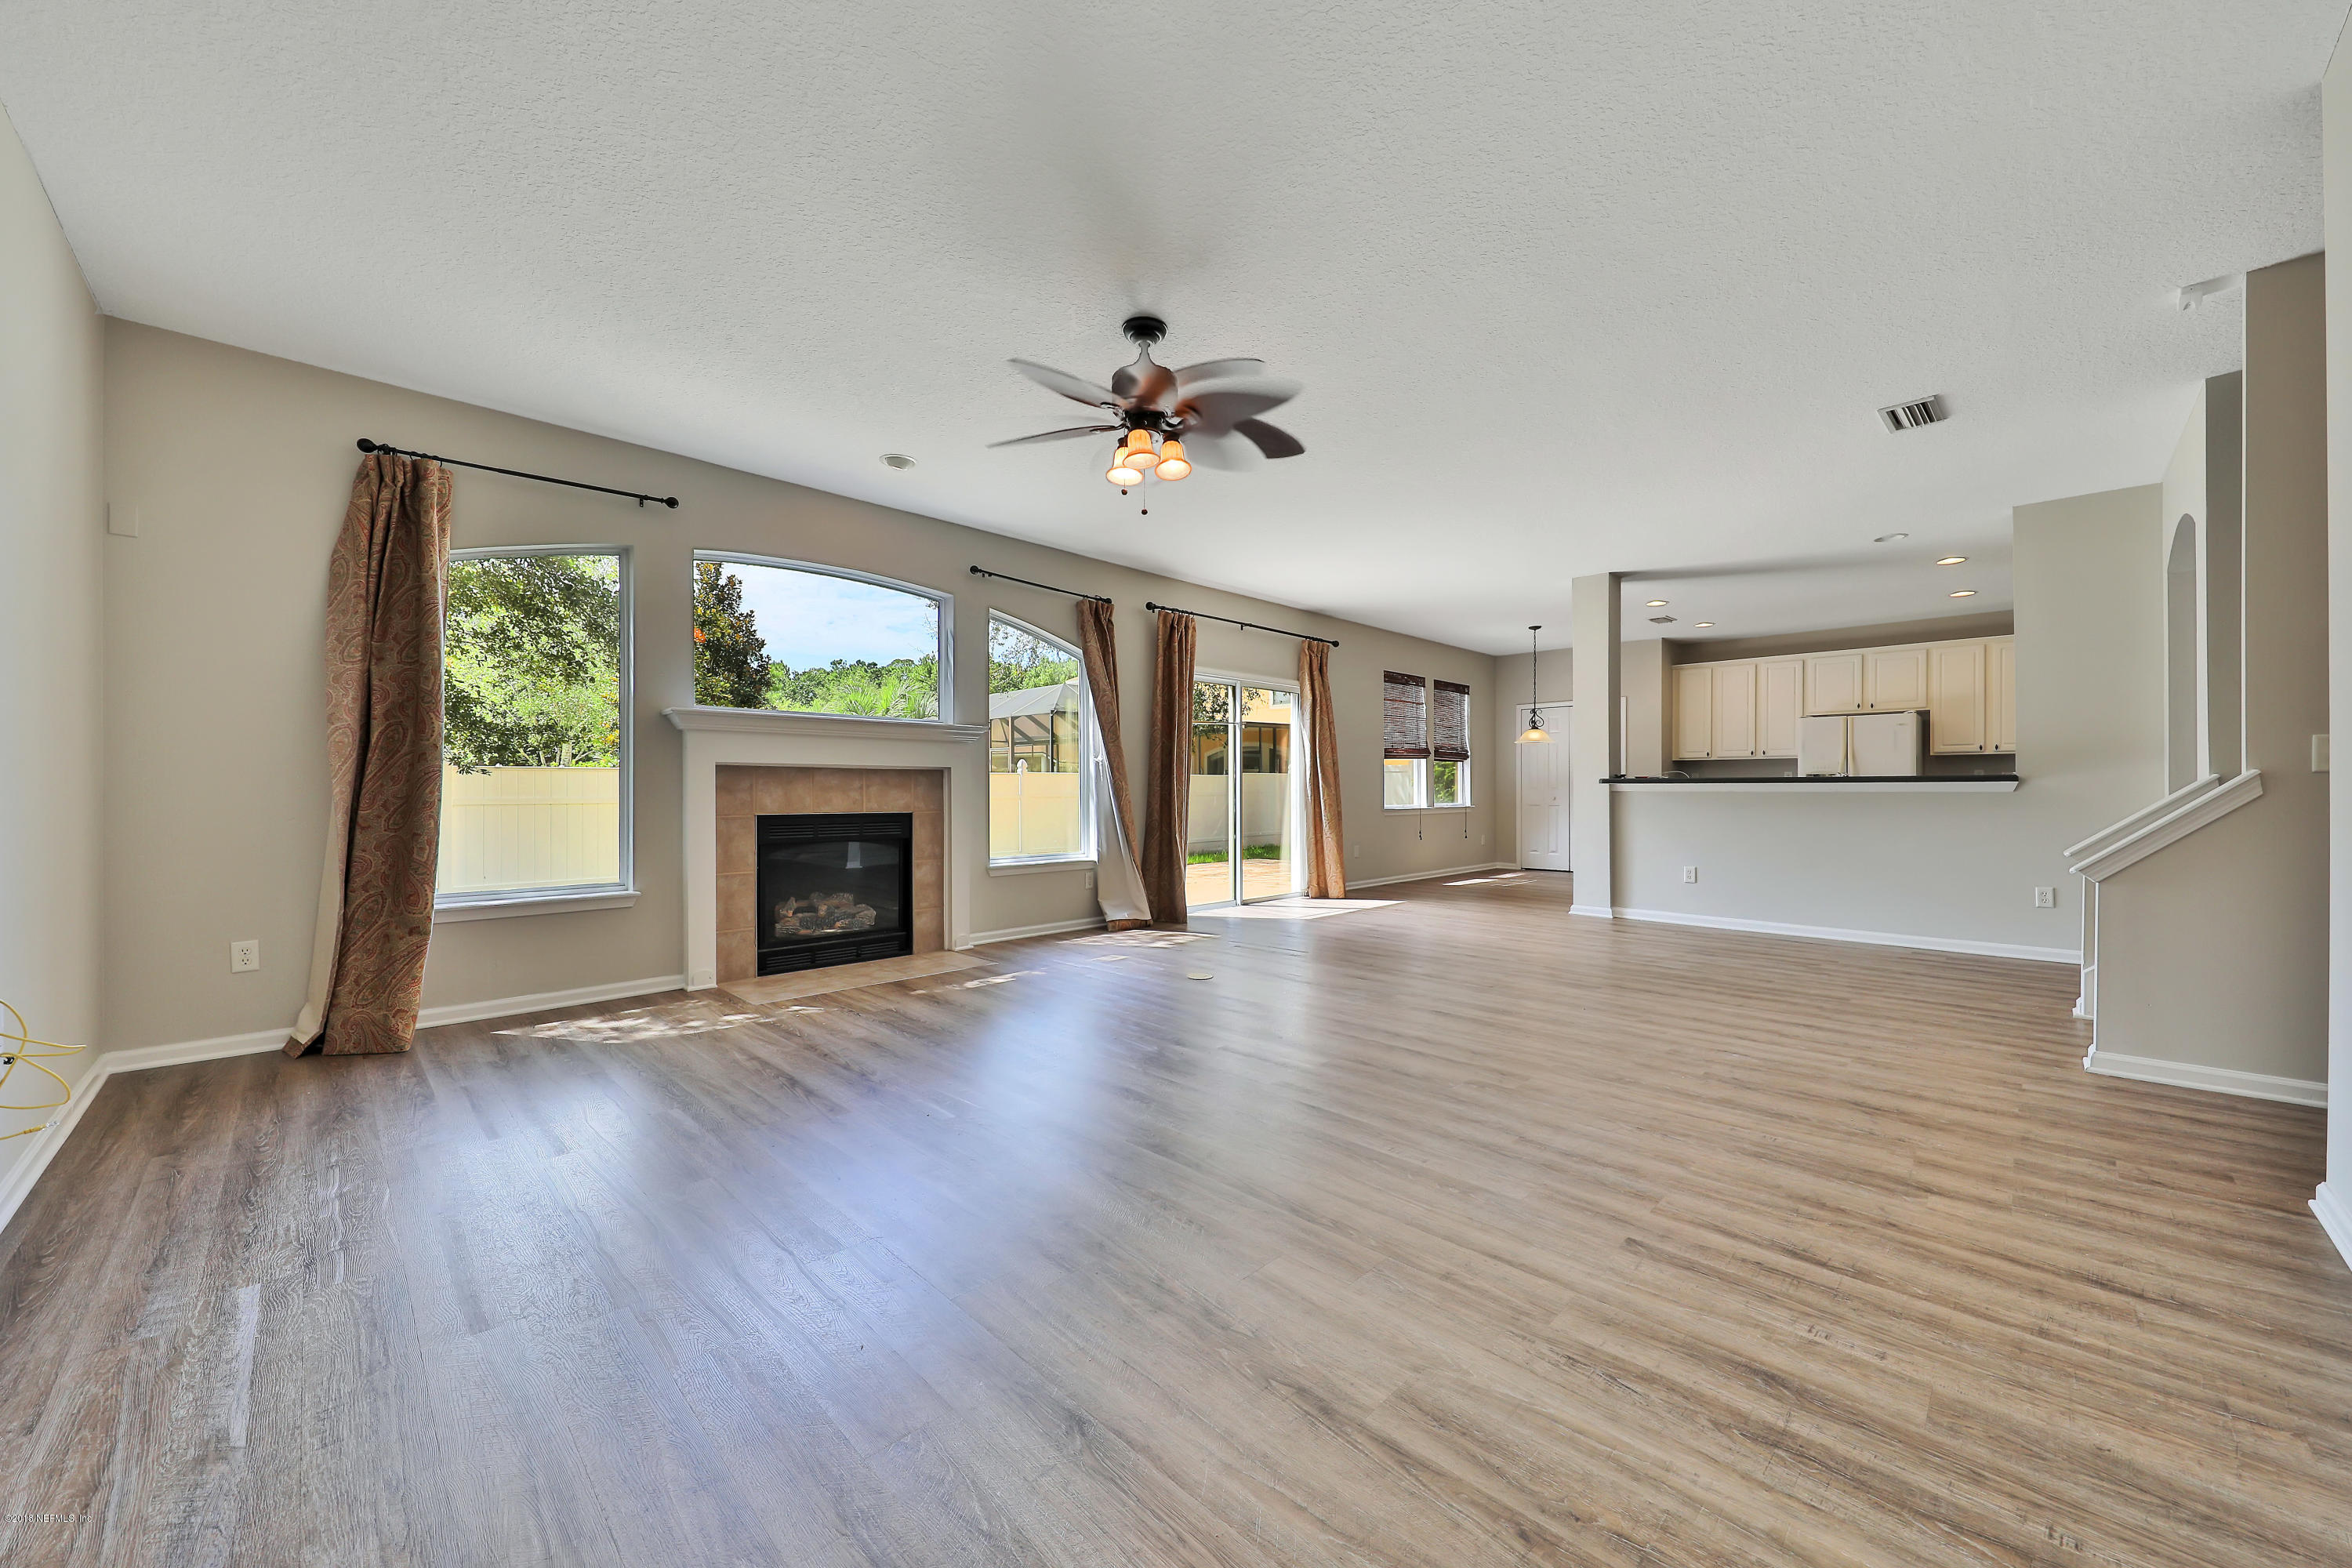 1106 ROUNDTREE, ST JOHNS, FLORIDA 32259, 6 Bedrooms Bedrooms, ,4 BathroomsBathrooms,Residential - single family,For sale,ROUNDTREE,952751